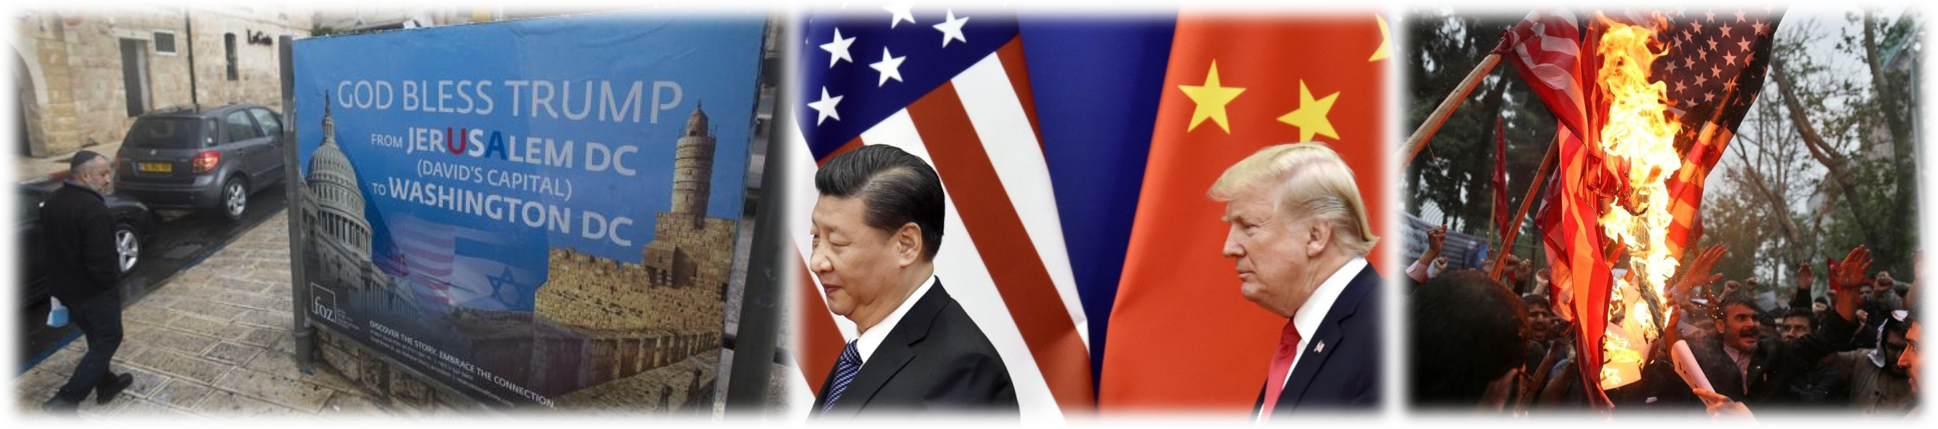 3Geopolitical Events